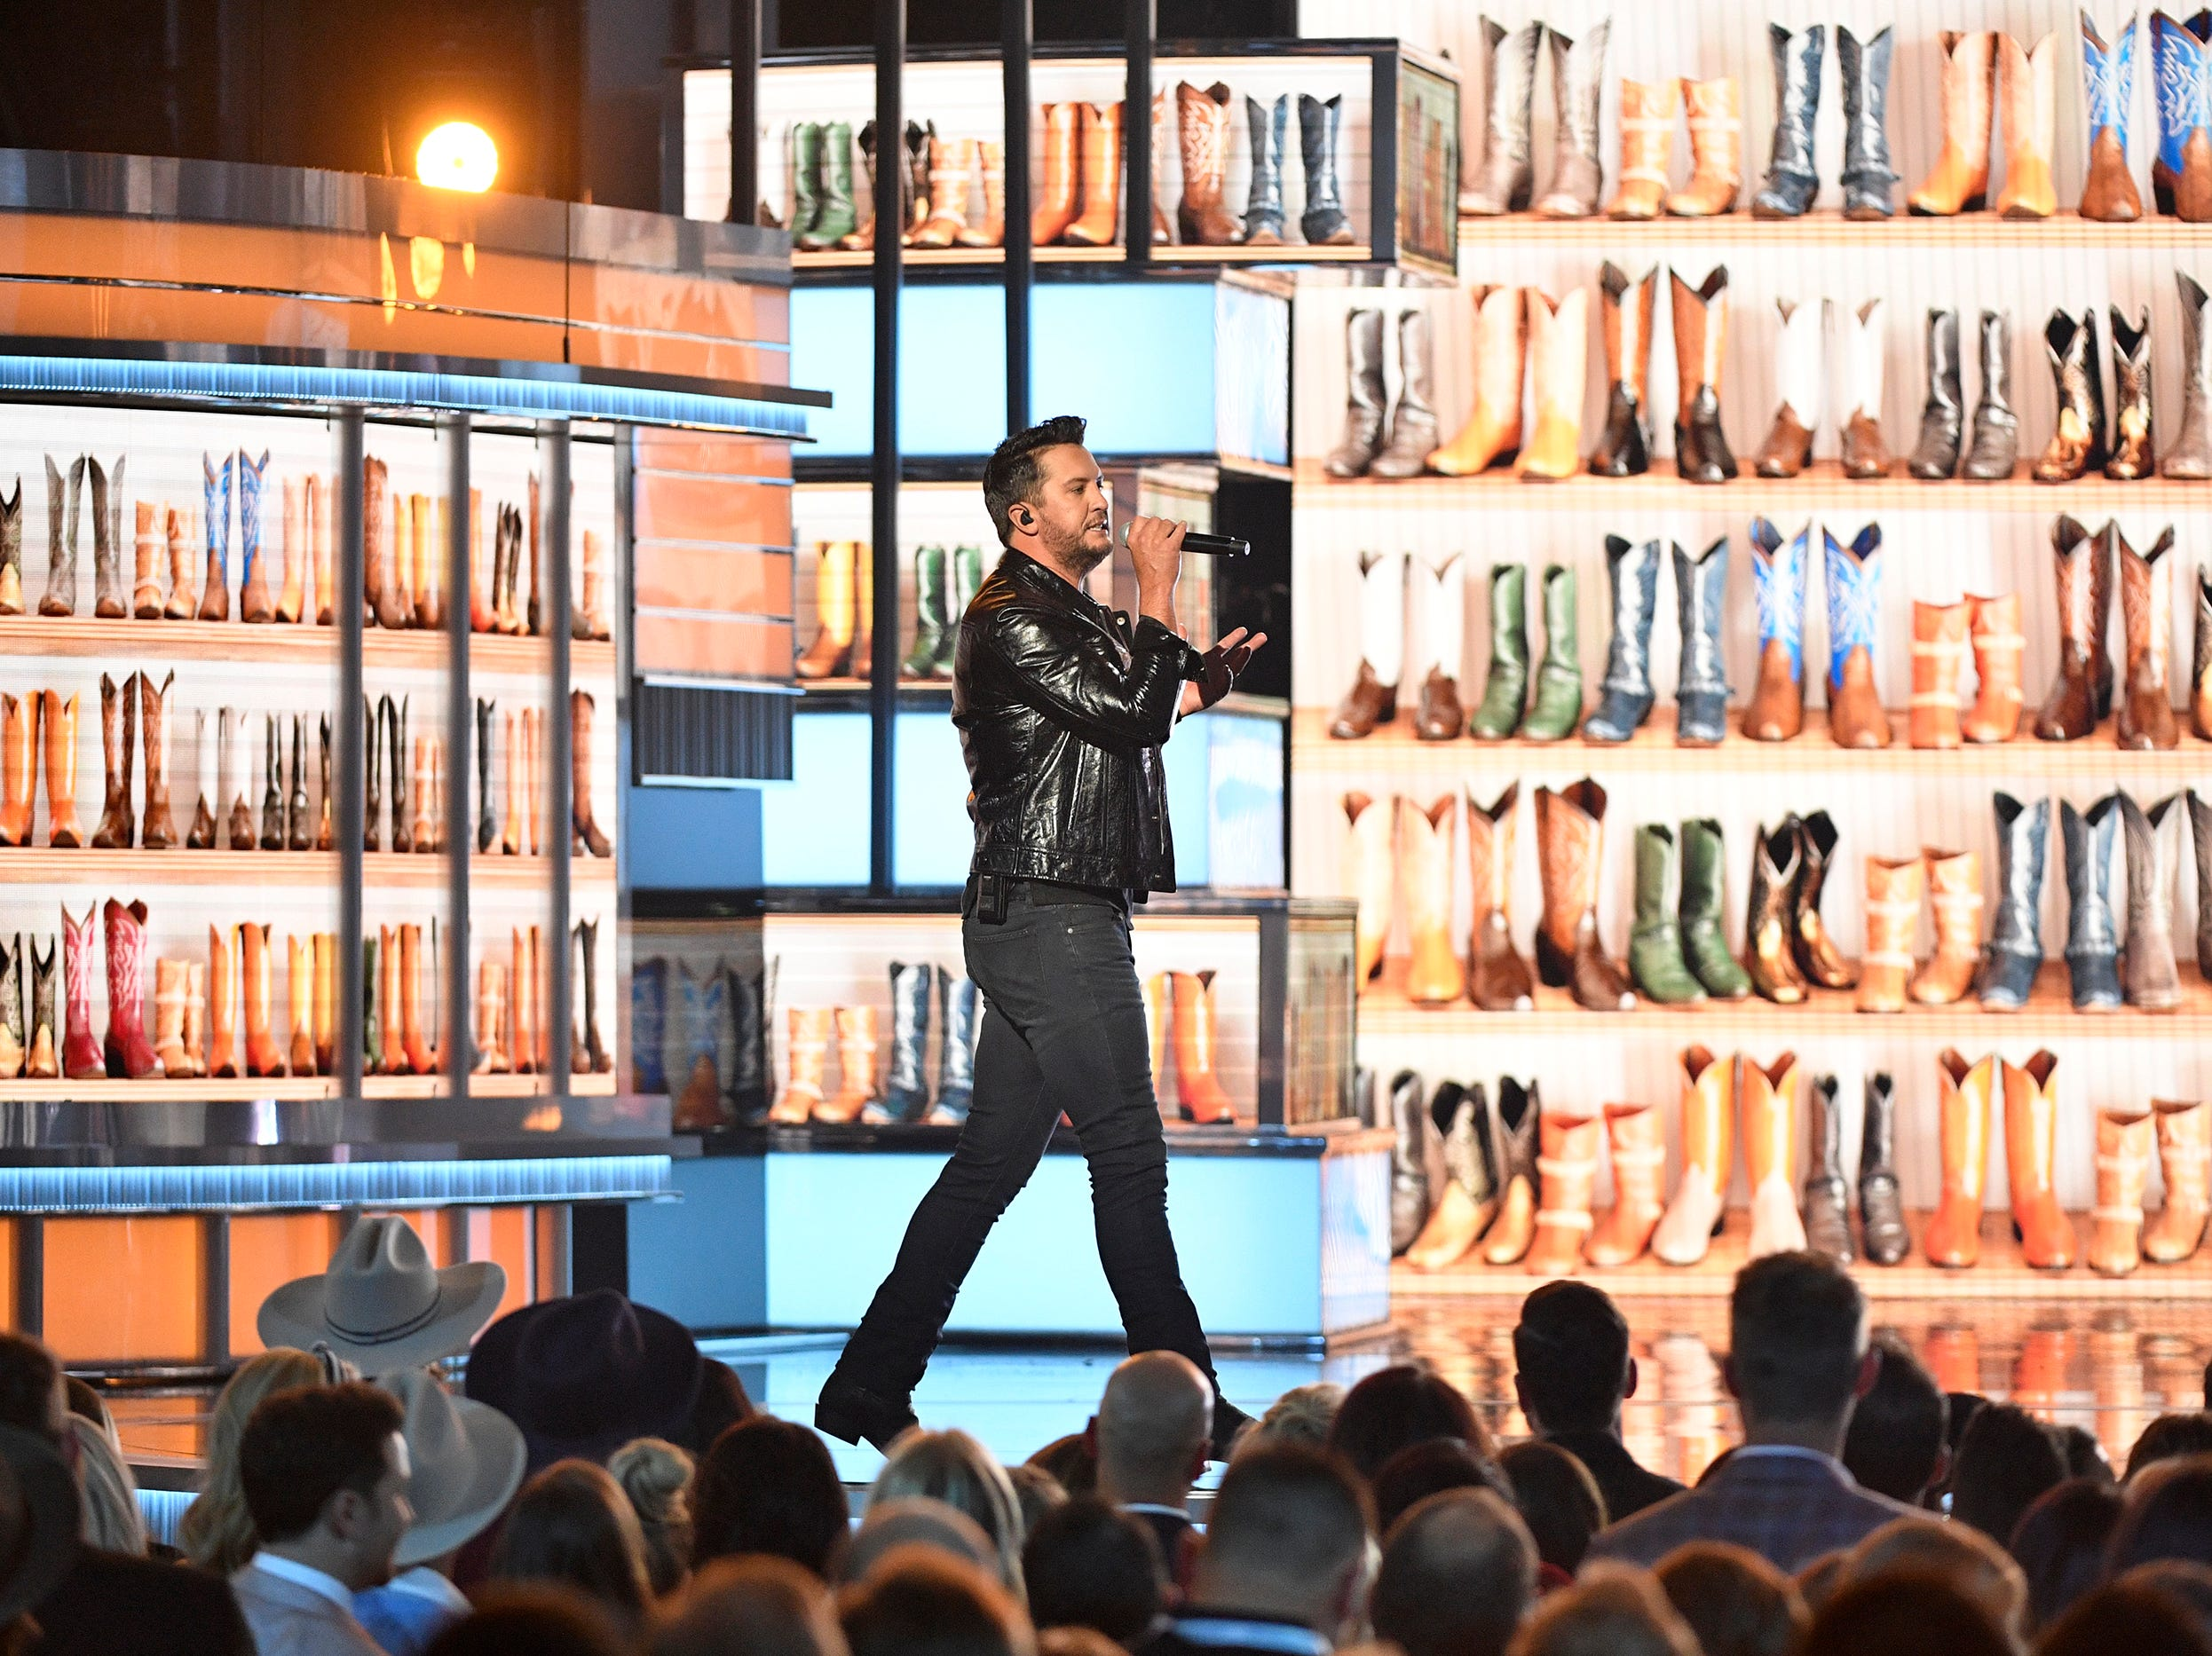 Luke Bryan performs during the 54TH Academy of Country Music Awards Sunday, April 7, 2019, in Las Vegas, Nev.